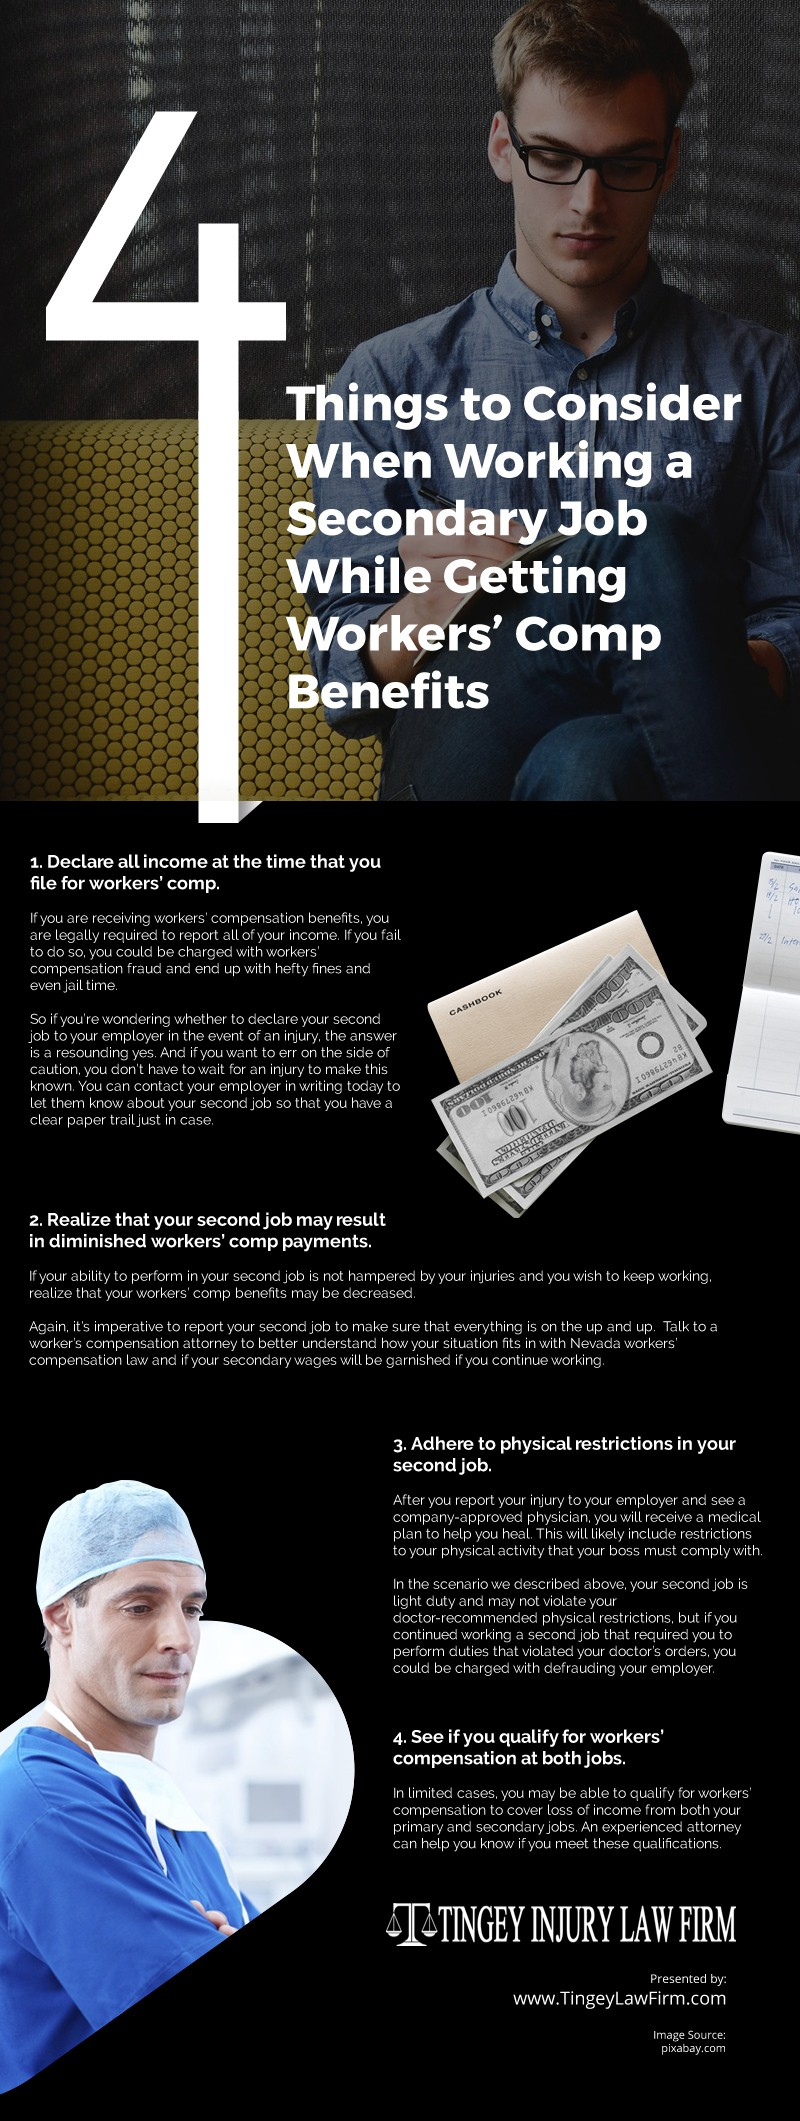 4 Things to Consider When Working a Secondary Job While Getting Workers' Comp Benefits Infographic